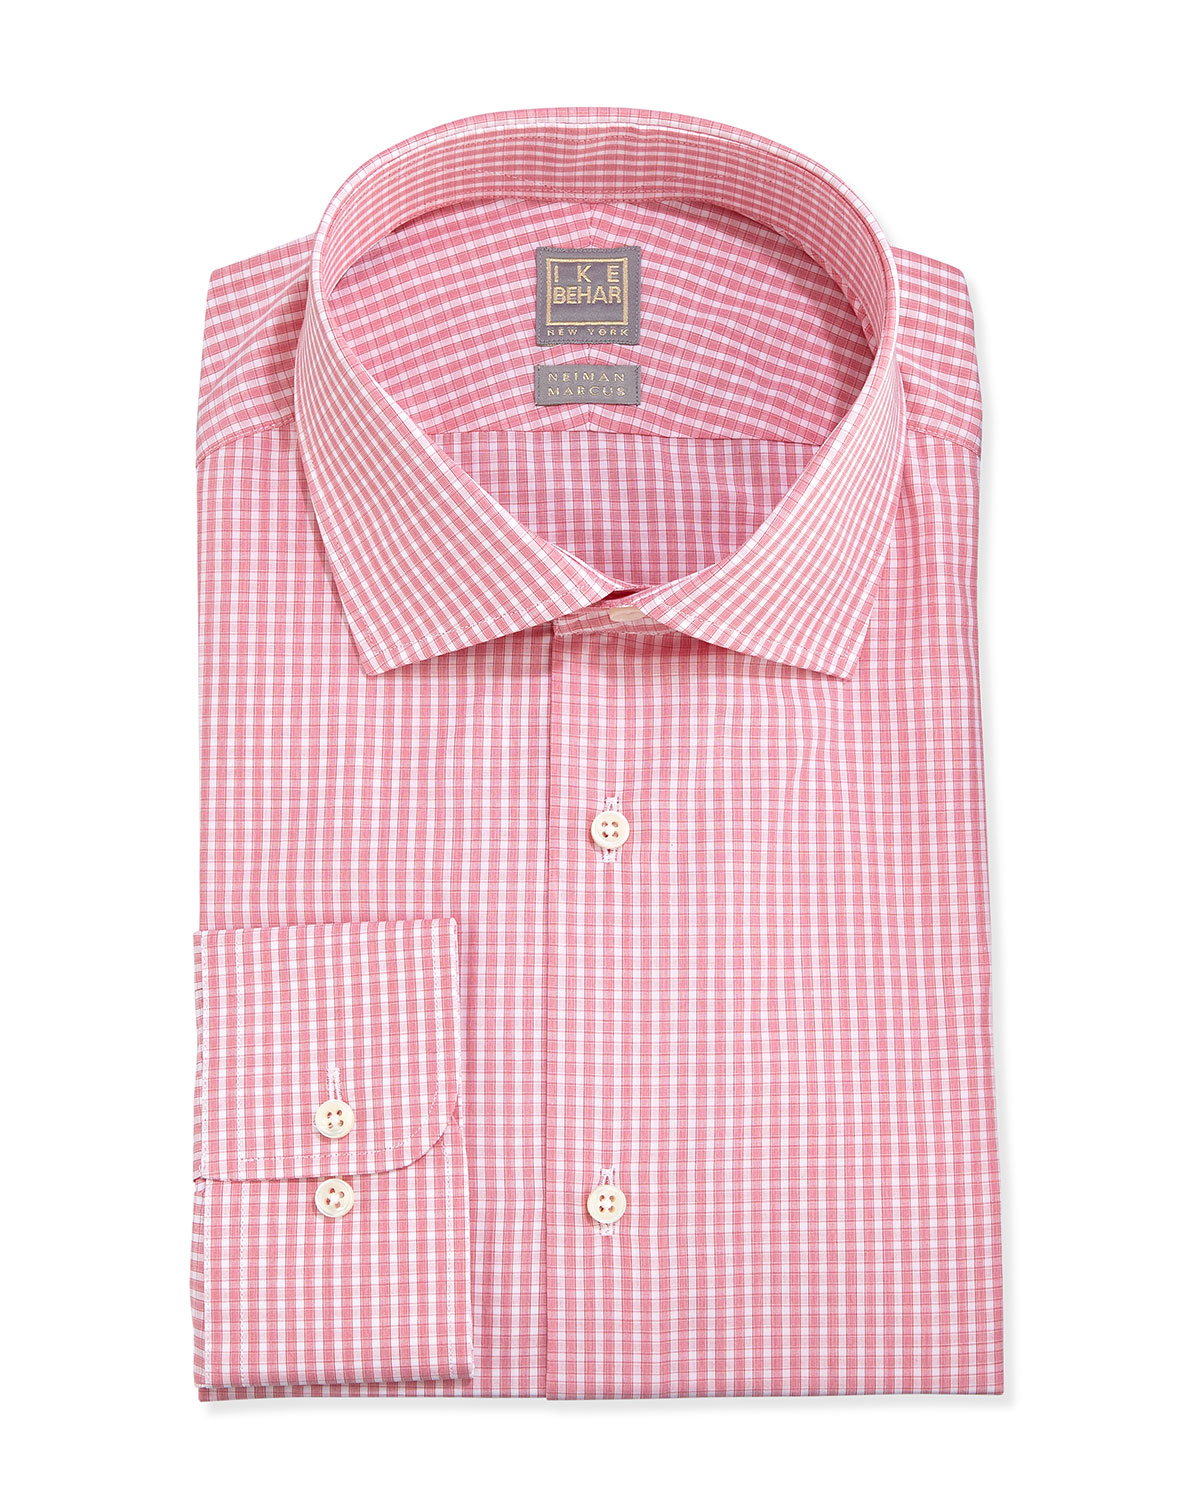 Lyst Ike Behar Woven Check Dress Shirt Coral In Pink For Men